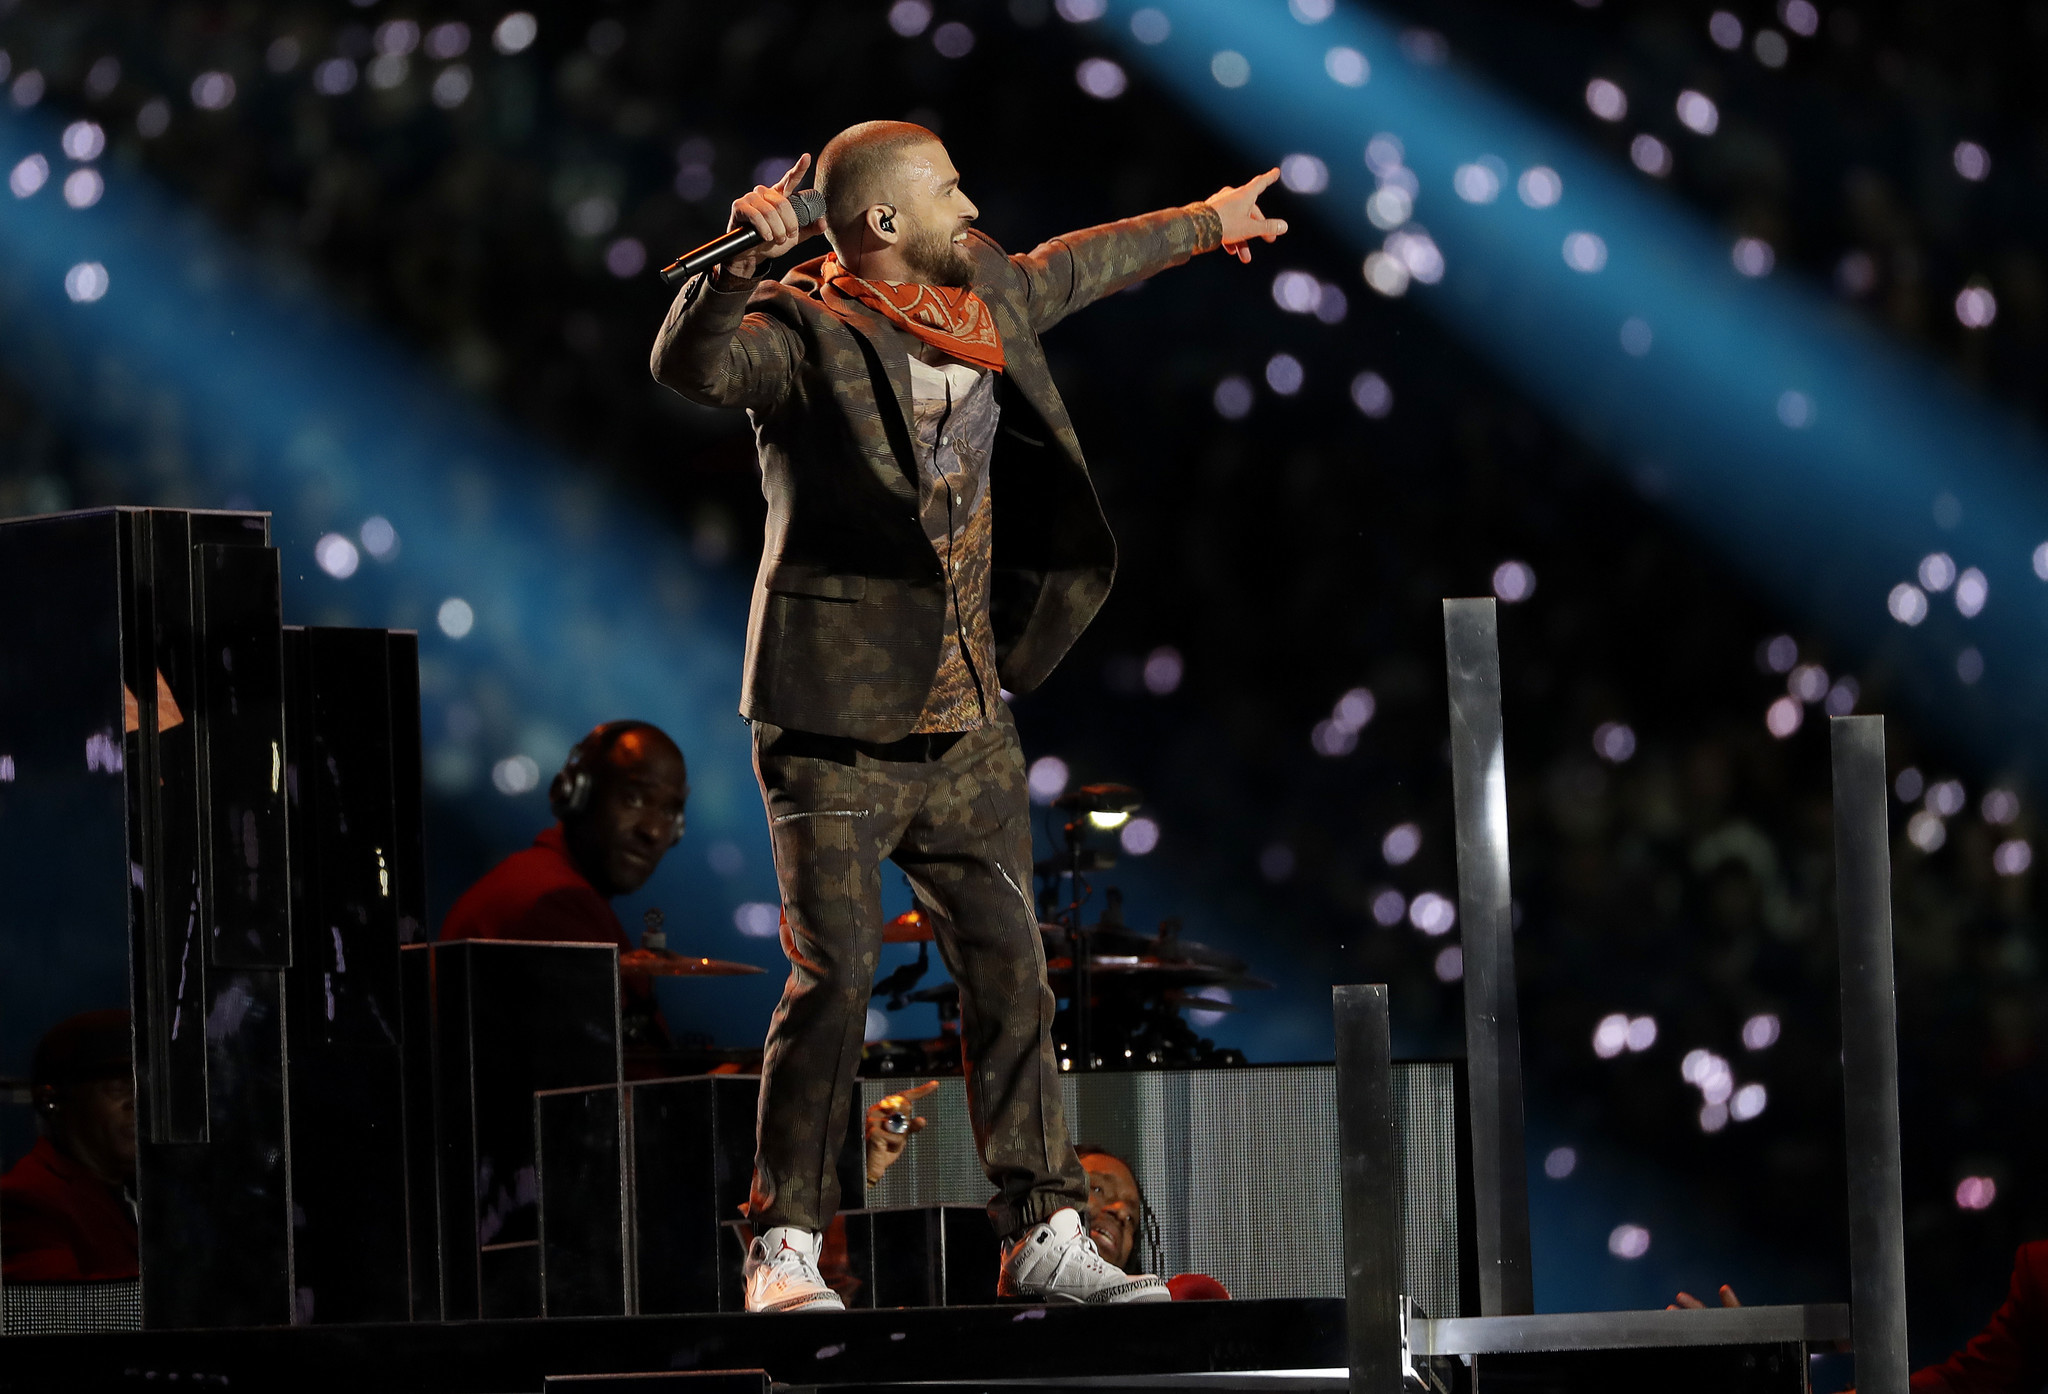 See Photos With 2018 Photos: Photos: Justin Timberlake Super Bowl 2018 Halftime Show